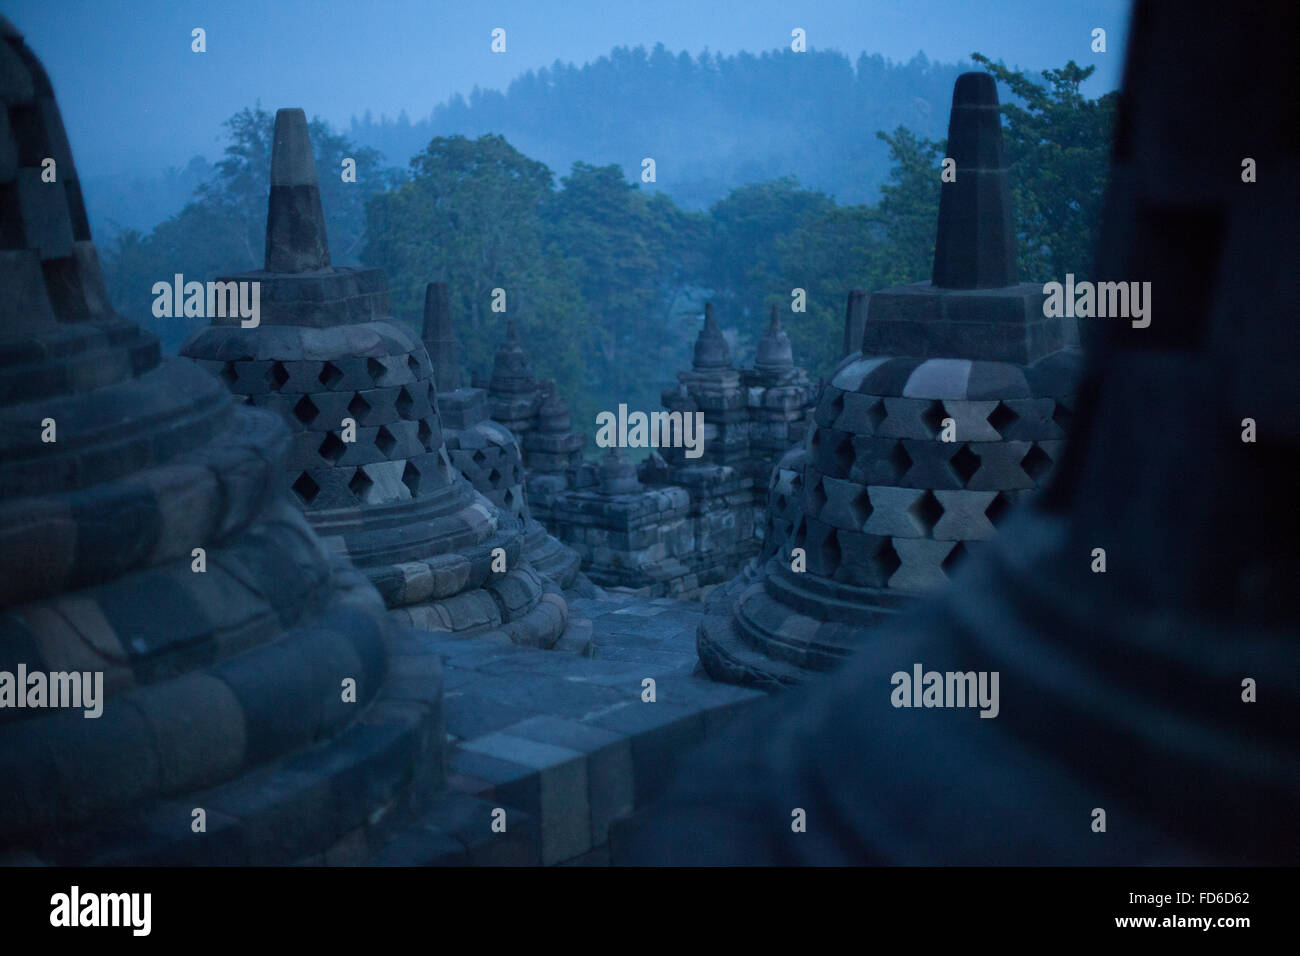 Built Structures Against Trees - Stock Image